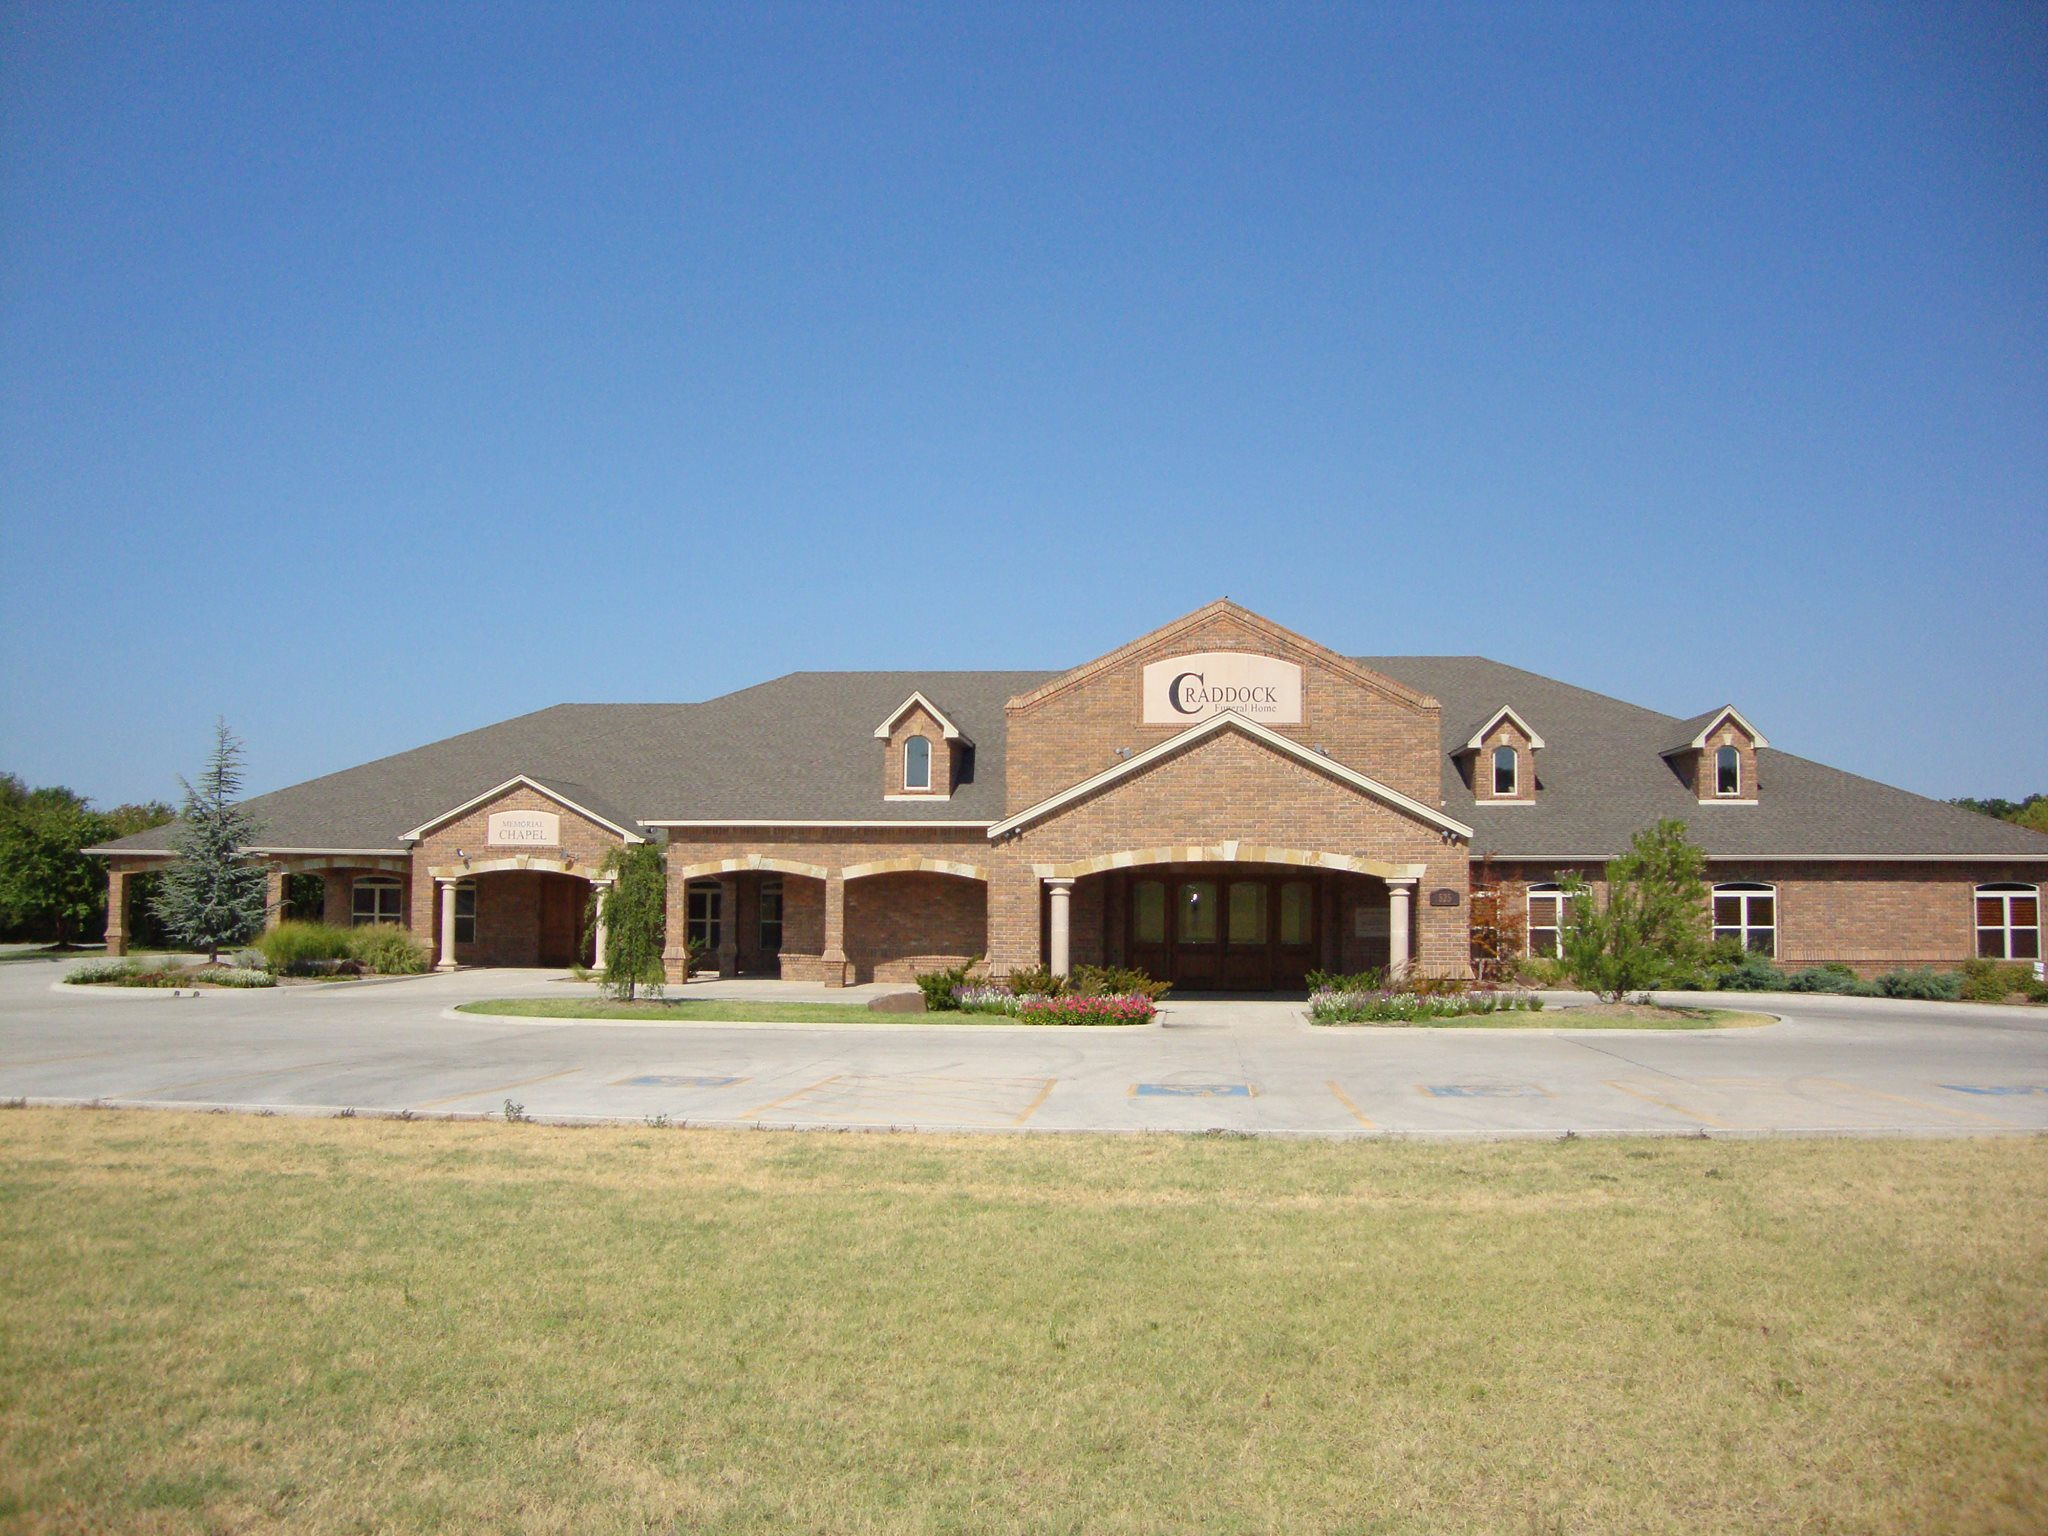 Oklahoma's Top Rated Local® Funeral Homes & Services Award Winner: Craddock Funeral Home